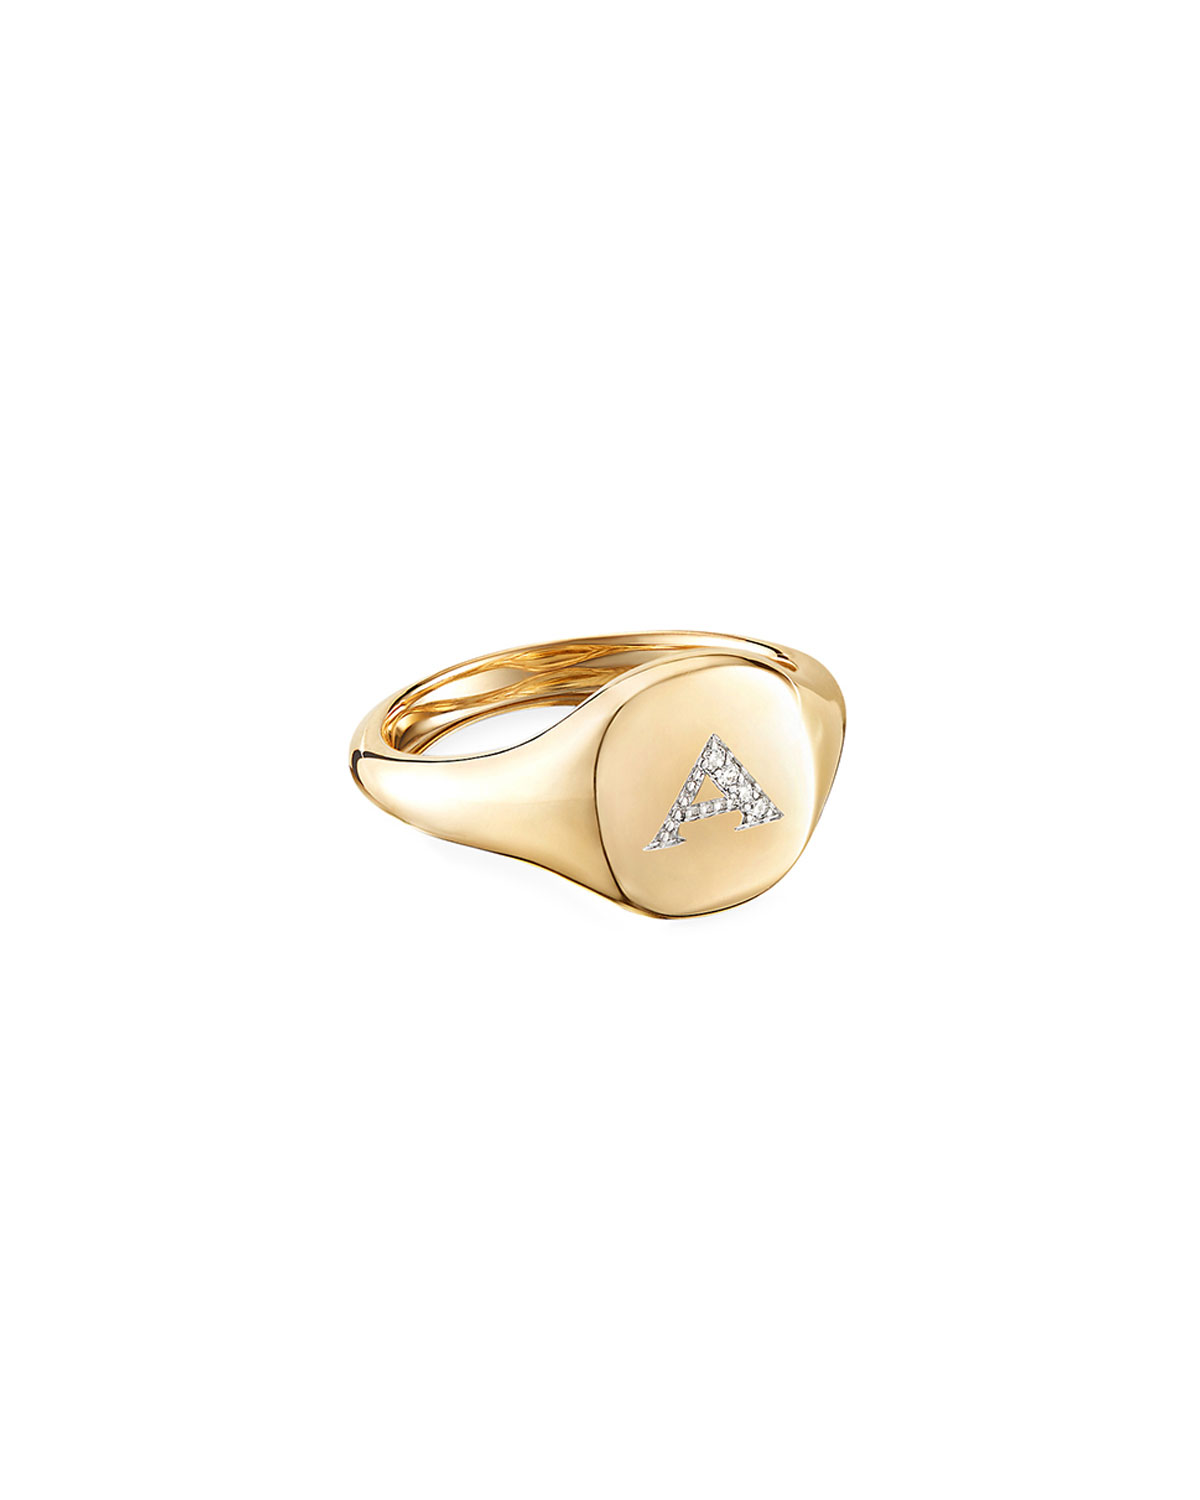 David Yurman Mini DY Initial A Pinky Ring in 18K Yellow Gold with Diamonds, Size 3.5